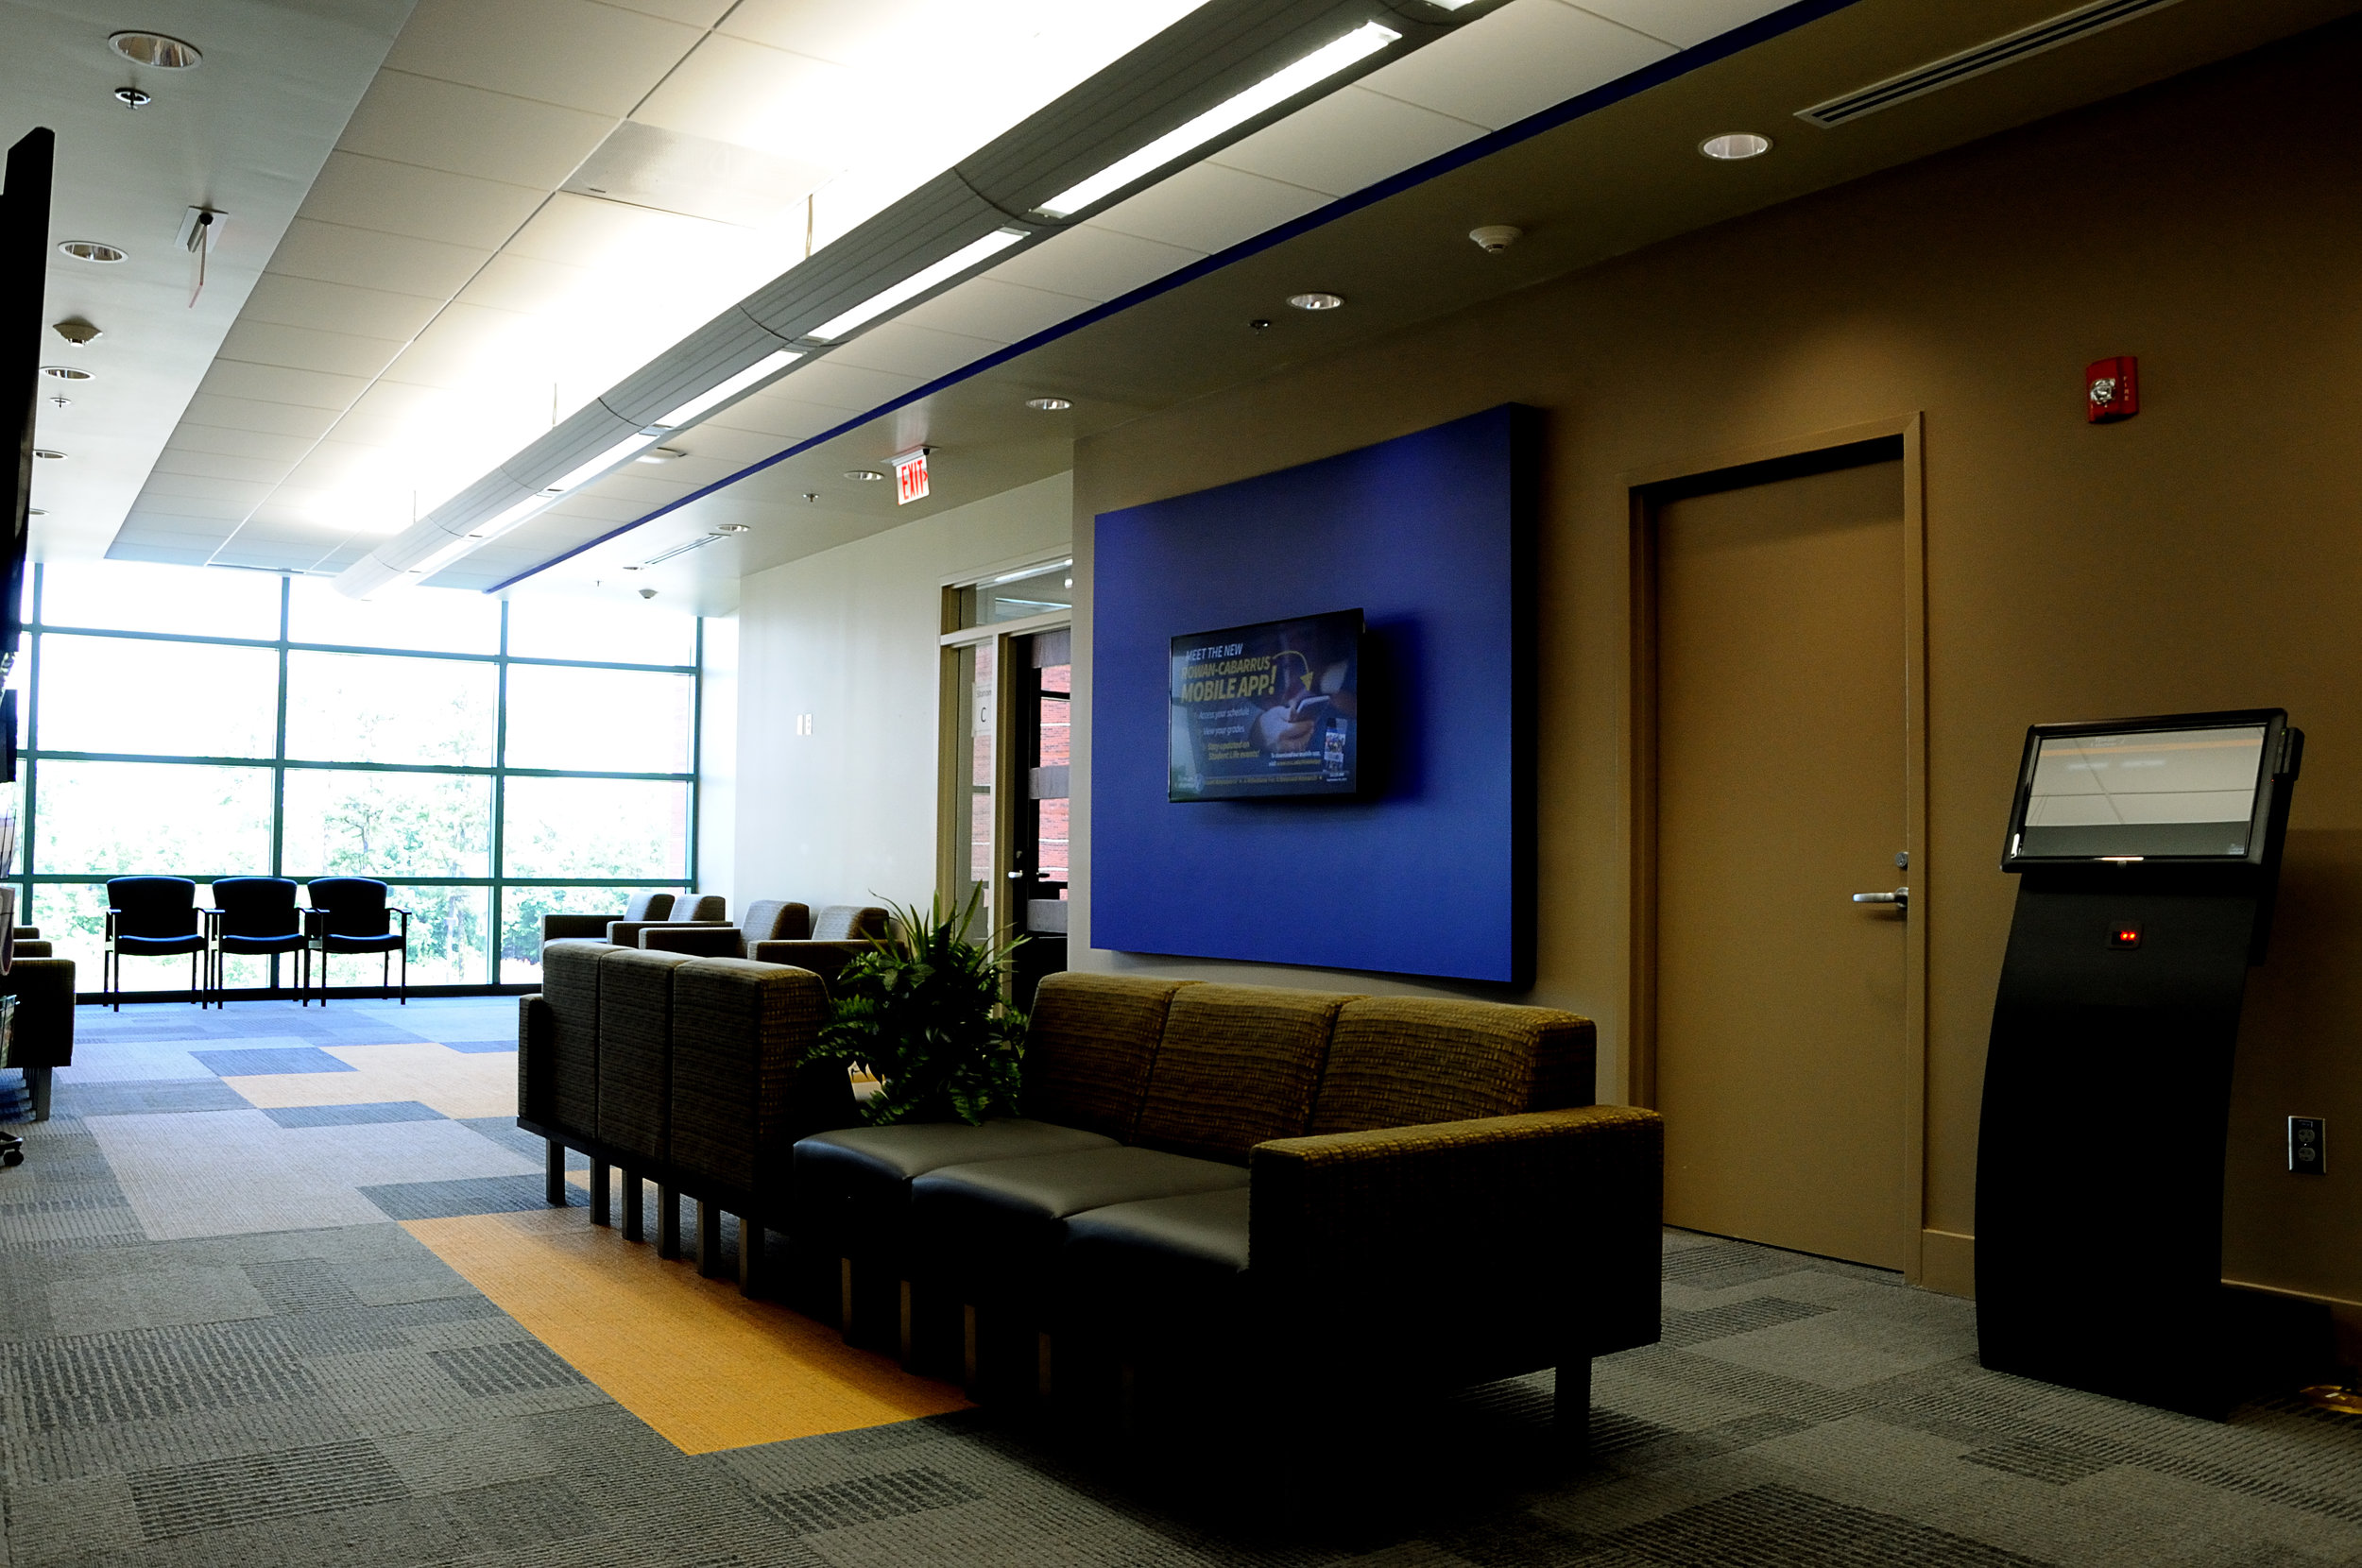 ADW-Higher-Education-RCCC-South-Campus-Concord-NC-Building-1000-Student-Services-Renovation-1.jpg